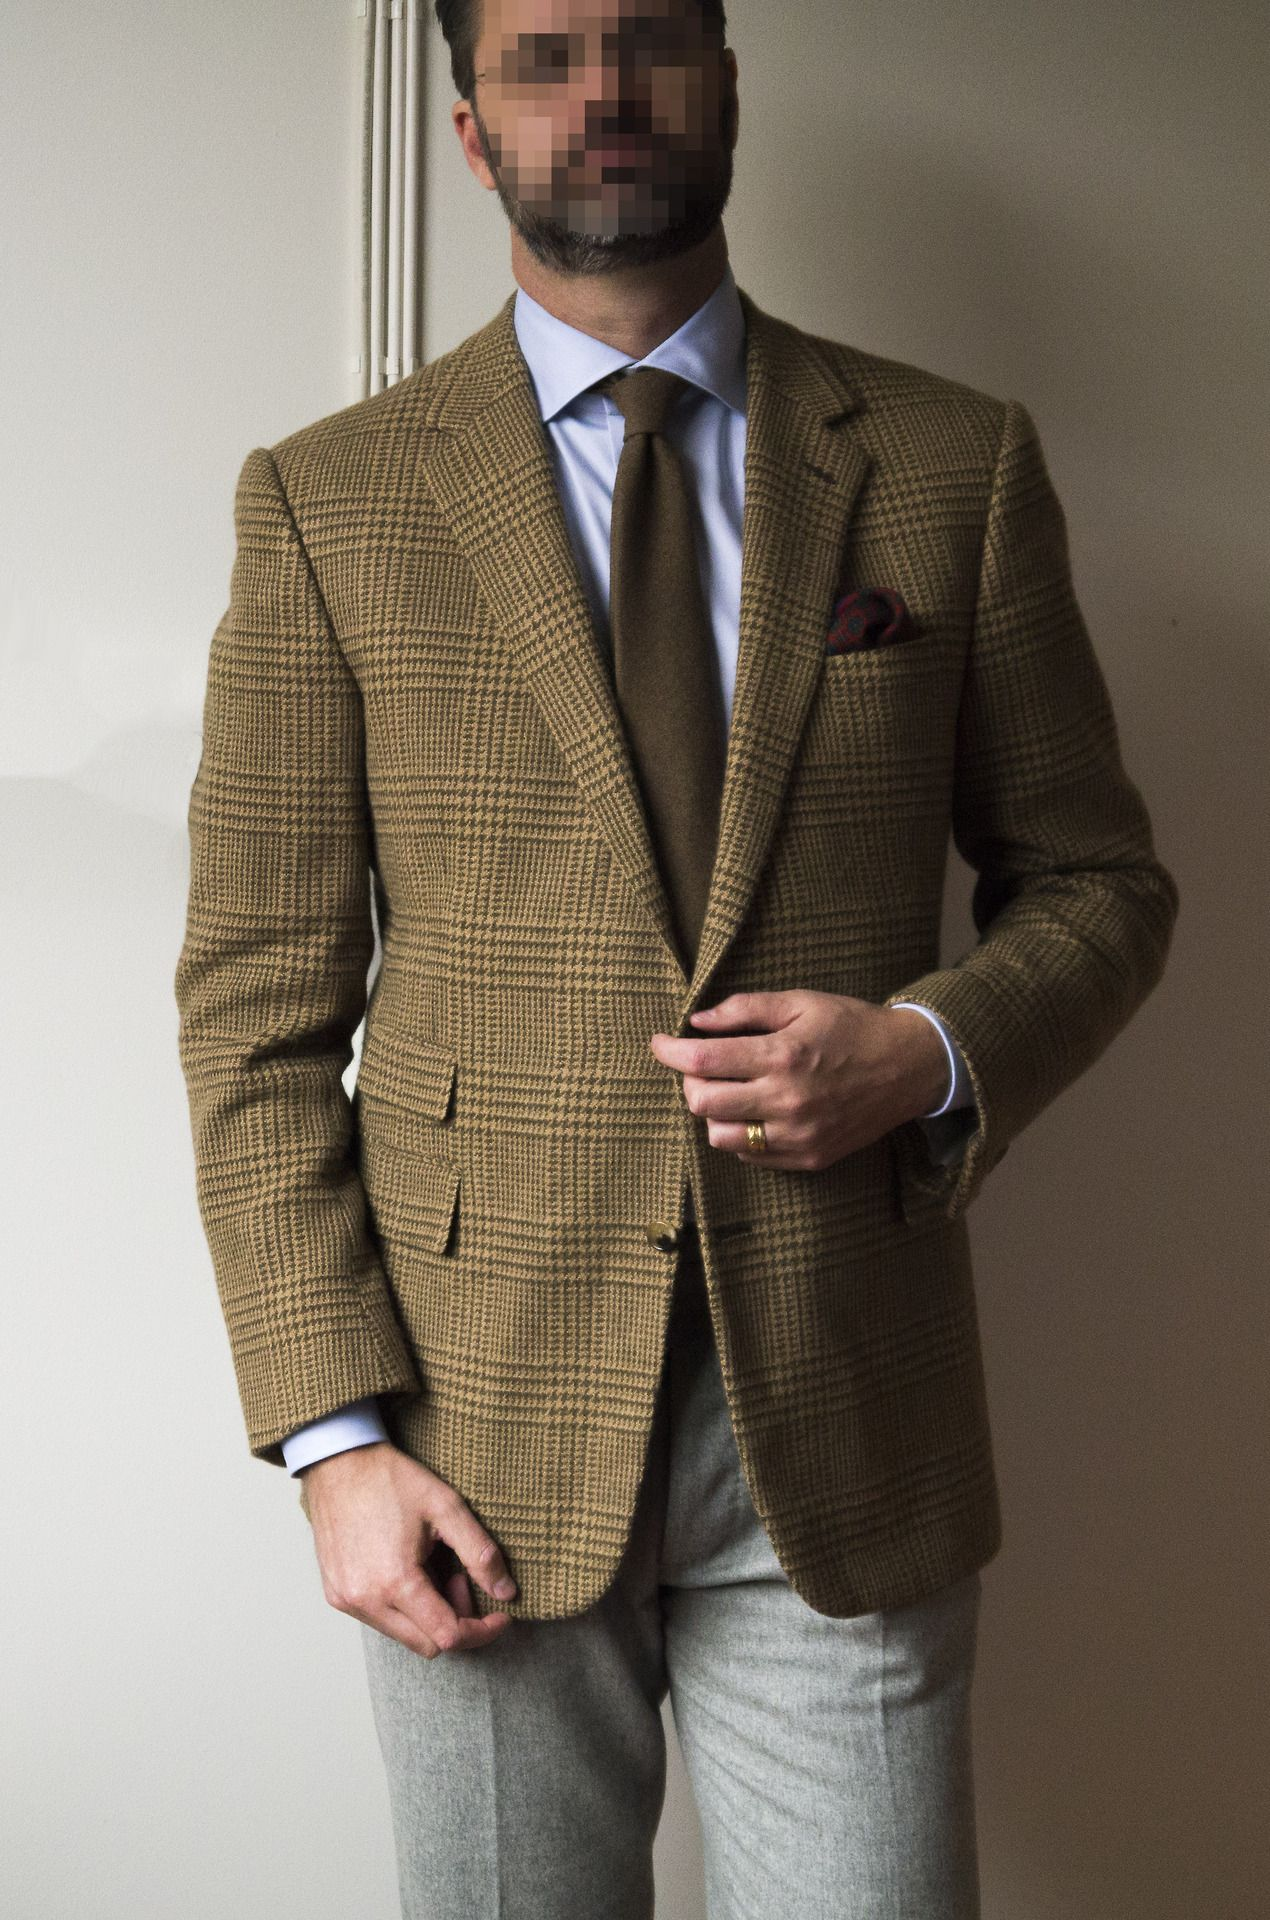 Tan tweed sport coat, light blue shirt, brown tie, light grey ...